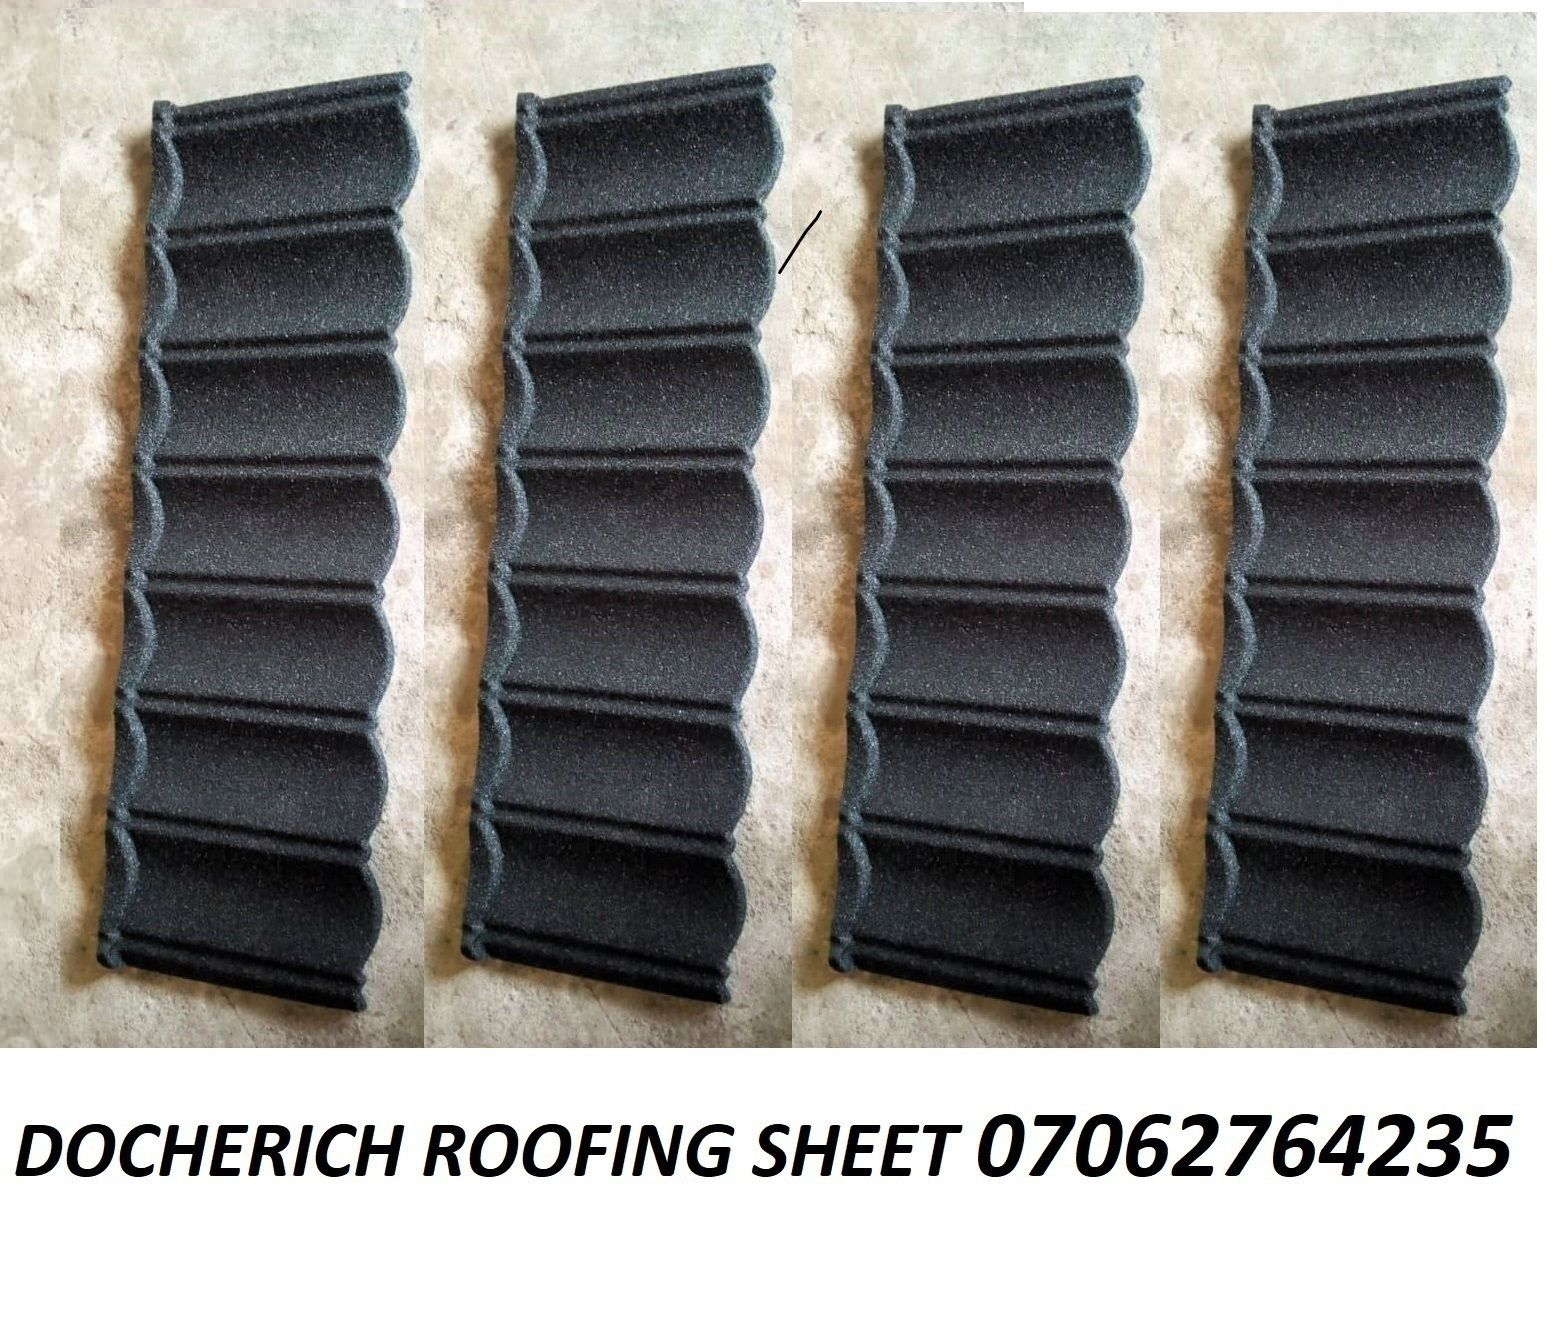 Docherich Solid Stone Coated Roofing Sheet 07062764235 Roofing Sheets Roofing Sheet